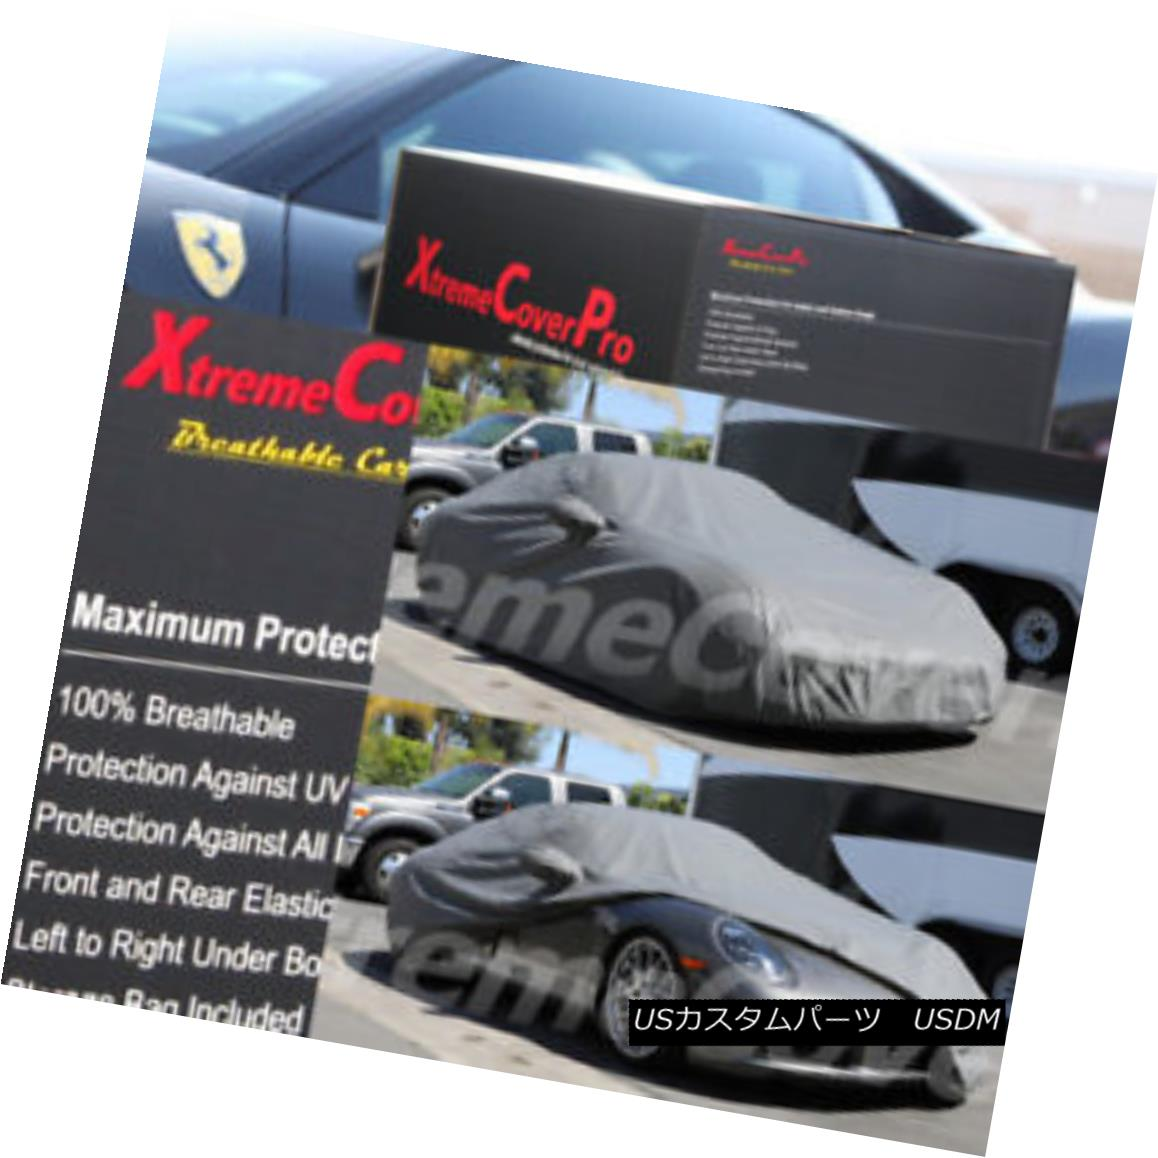 カーカバー CUSTOM FIT CAR COVER 2011 2012 2013 2014 2015 Porsche 911 Turbo Turbo S GREY CUSTOM FIT CAR COVER 2011 2012 2013 2014 2015ポルシェ911ターボターボSグレー